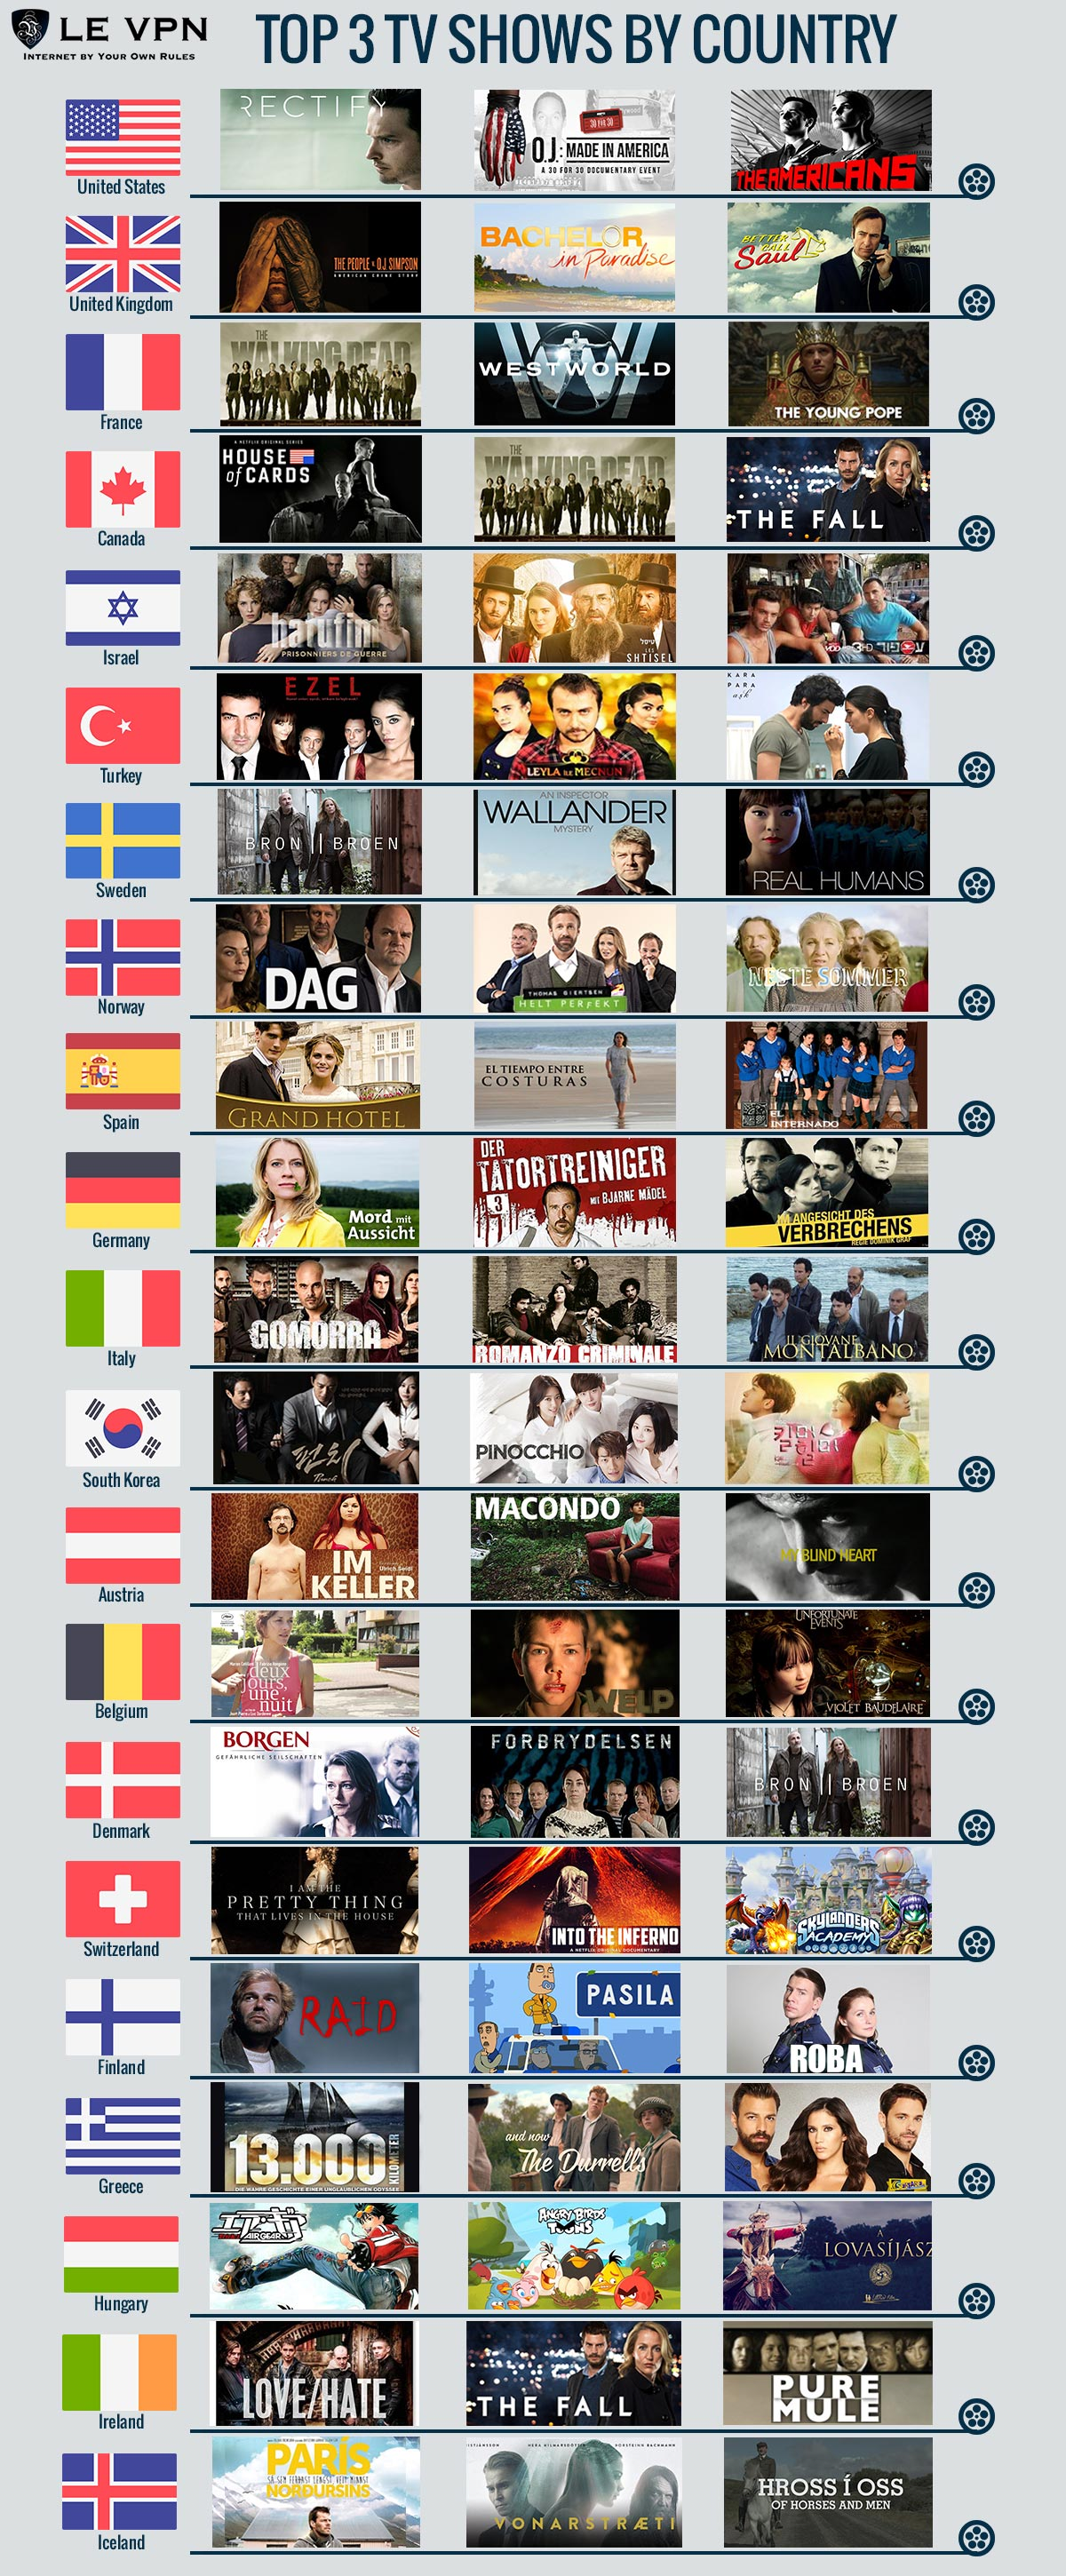 Best TV shows | Popular TV shows by country | Fast VPN to watch TV | Le VPN